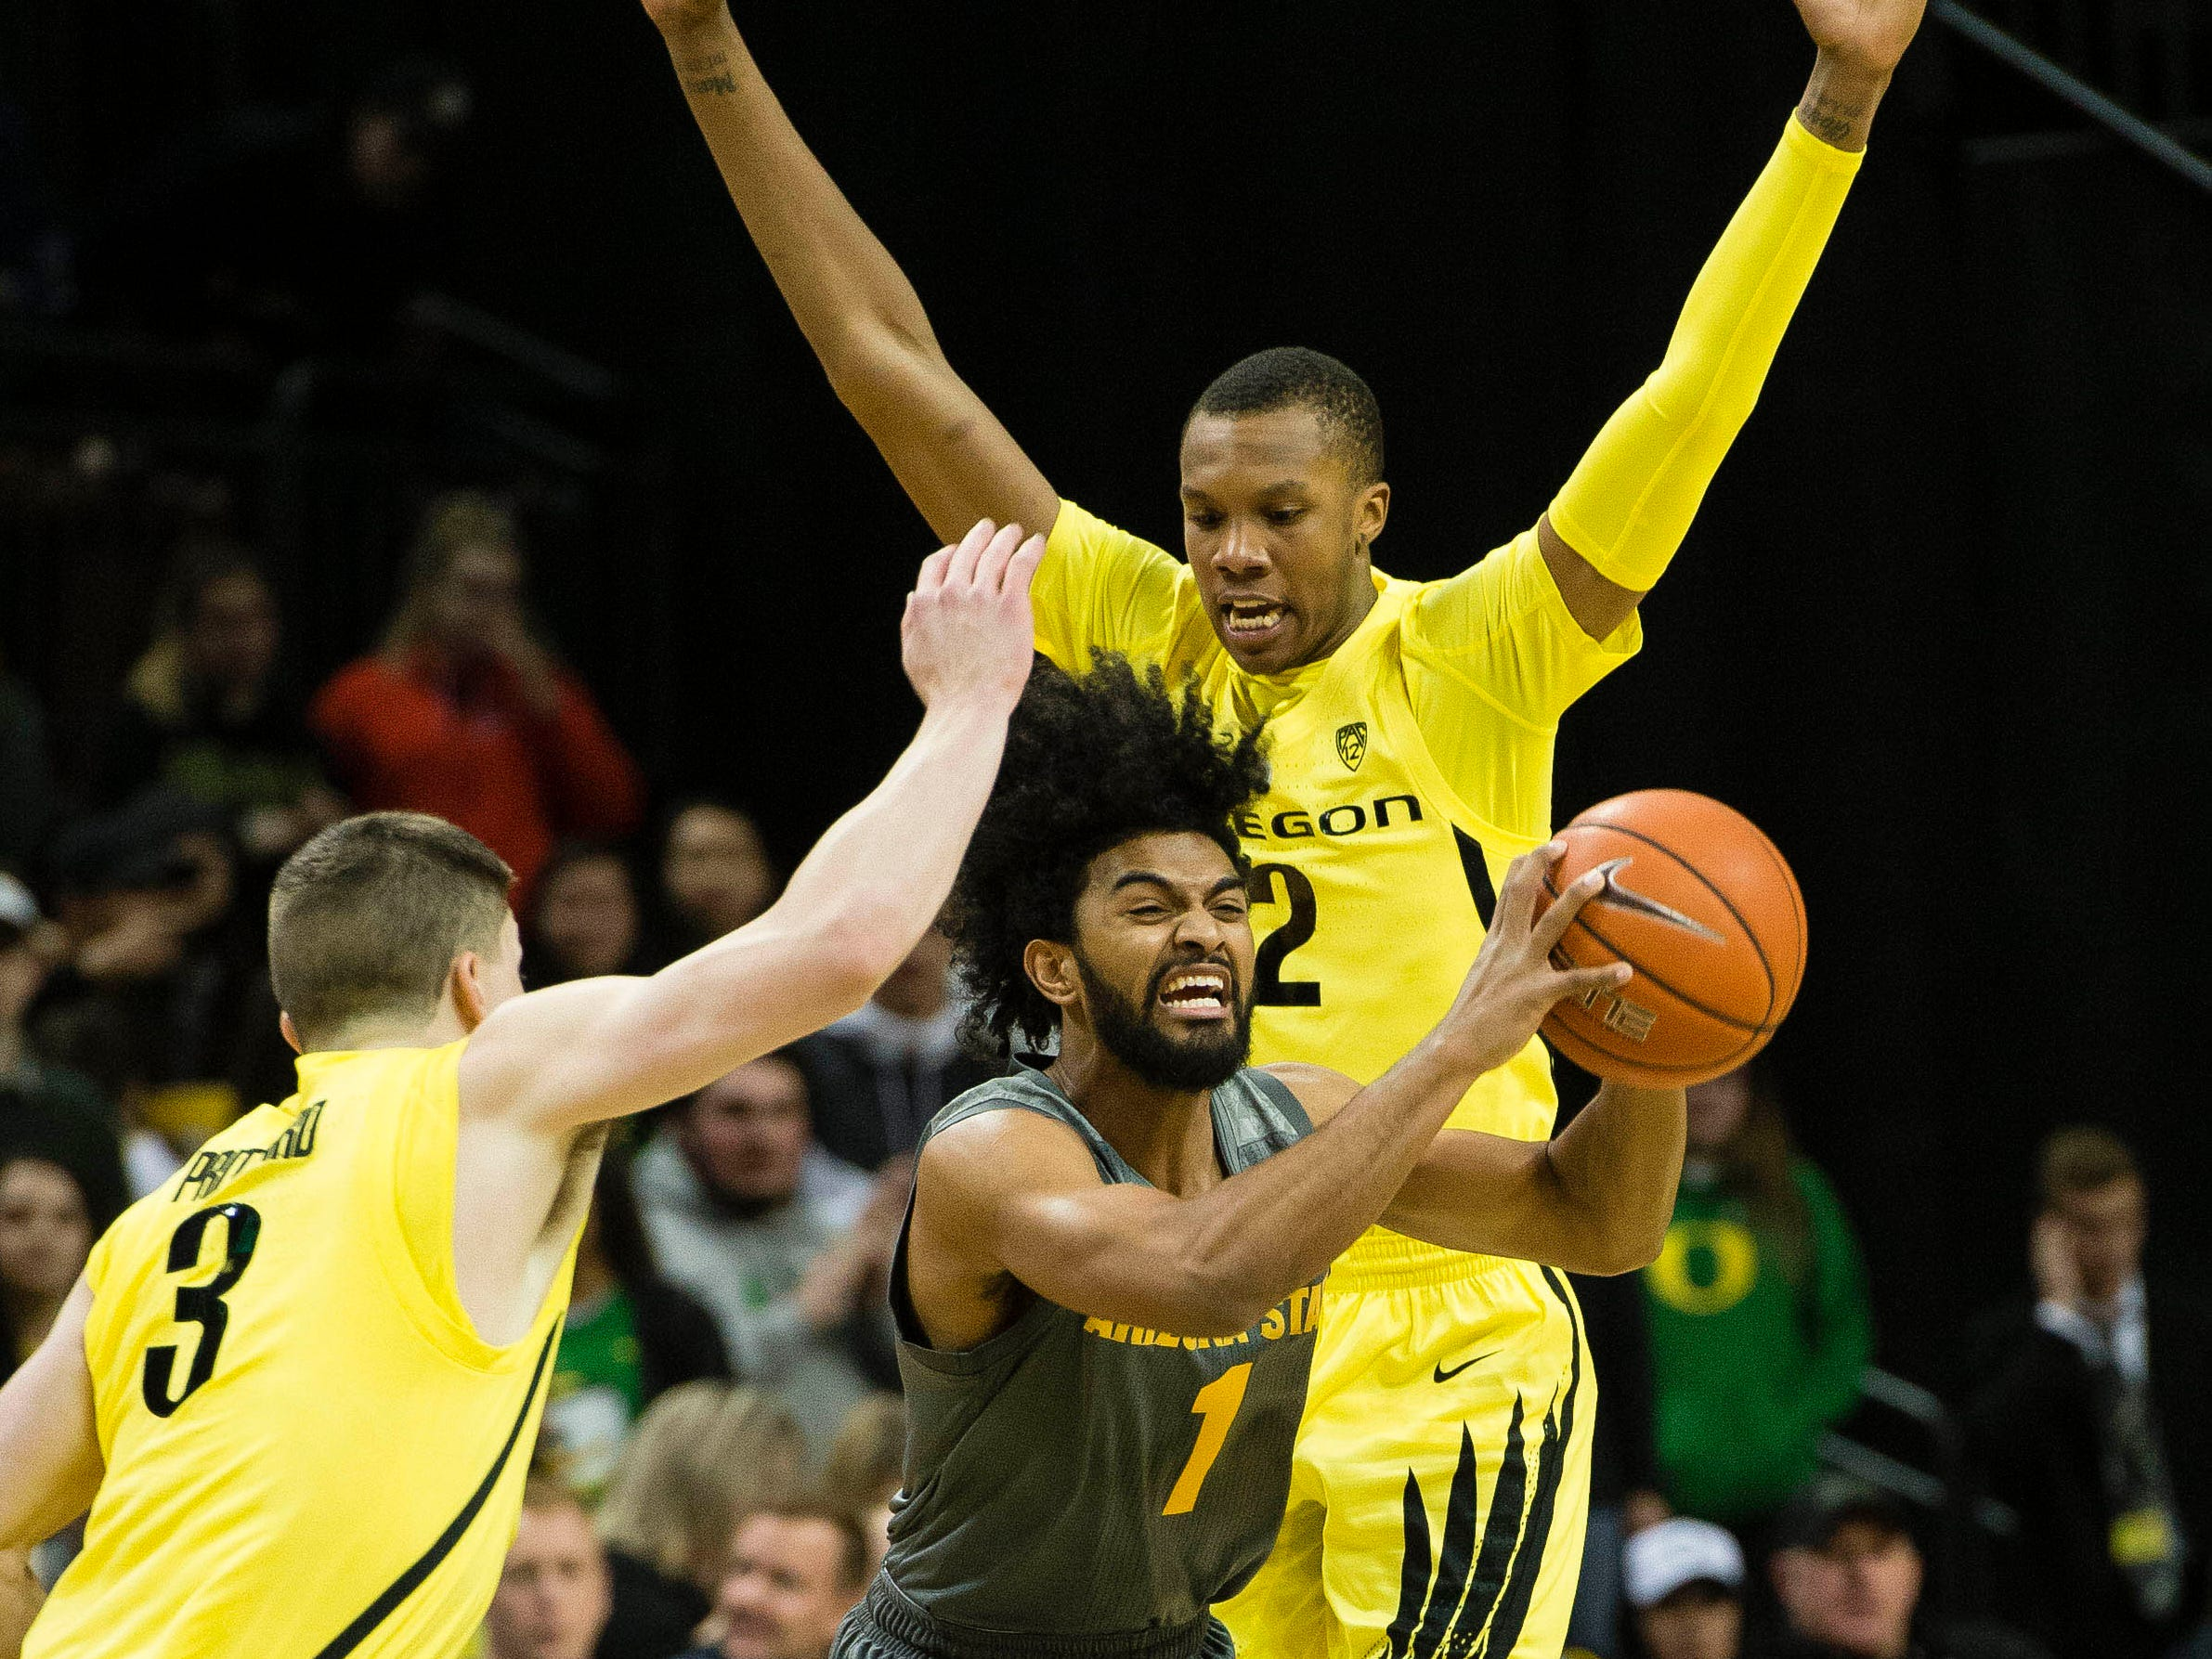 Feb 28, 2019; Eugene, OR, USA; Arizona State Sun Devils guard Remy Martin (1) controls the ball during the first half as Oregon Ducks guard Payton Pritchard (3) and forward Louis King (2) defend at Matthew Knight Arena.